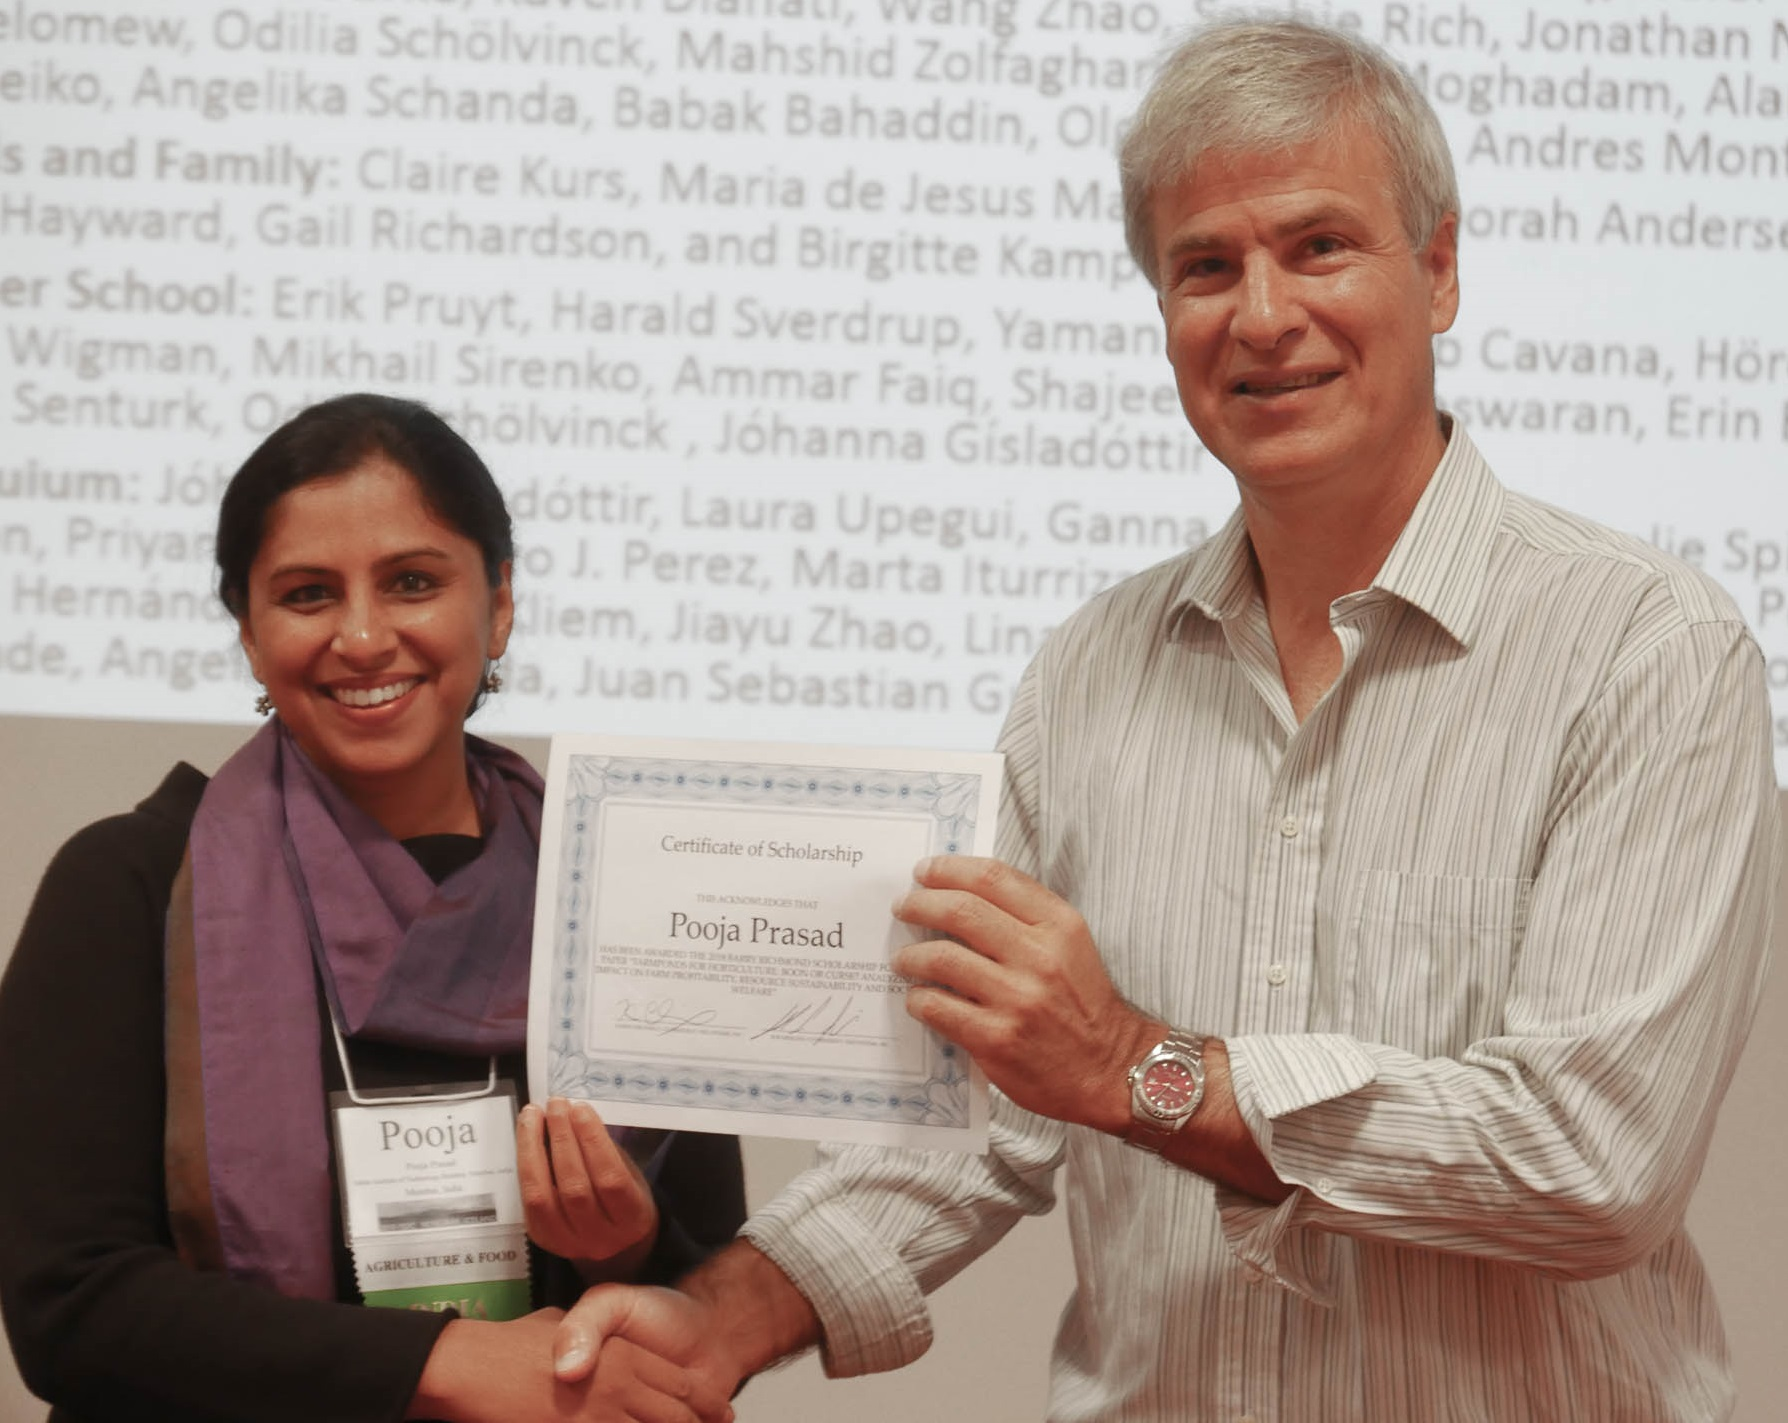 Pooja Prasad accepts Scholarship Award from Karim Chichakly